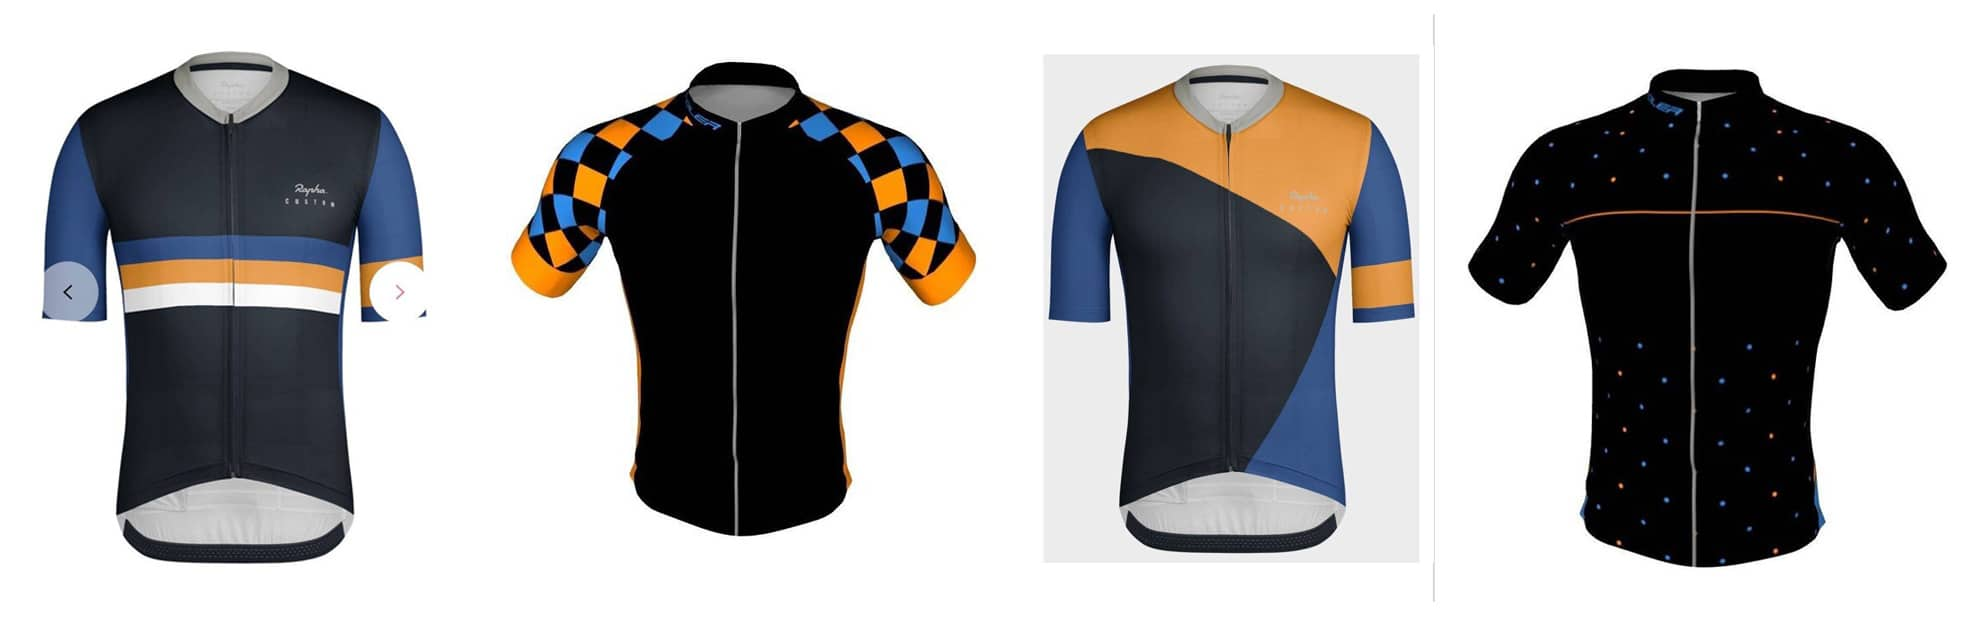 Lineup of basic cycling jersey designs